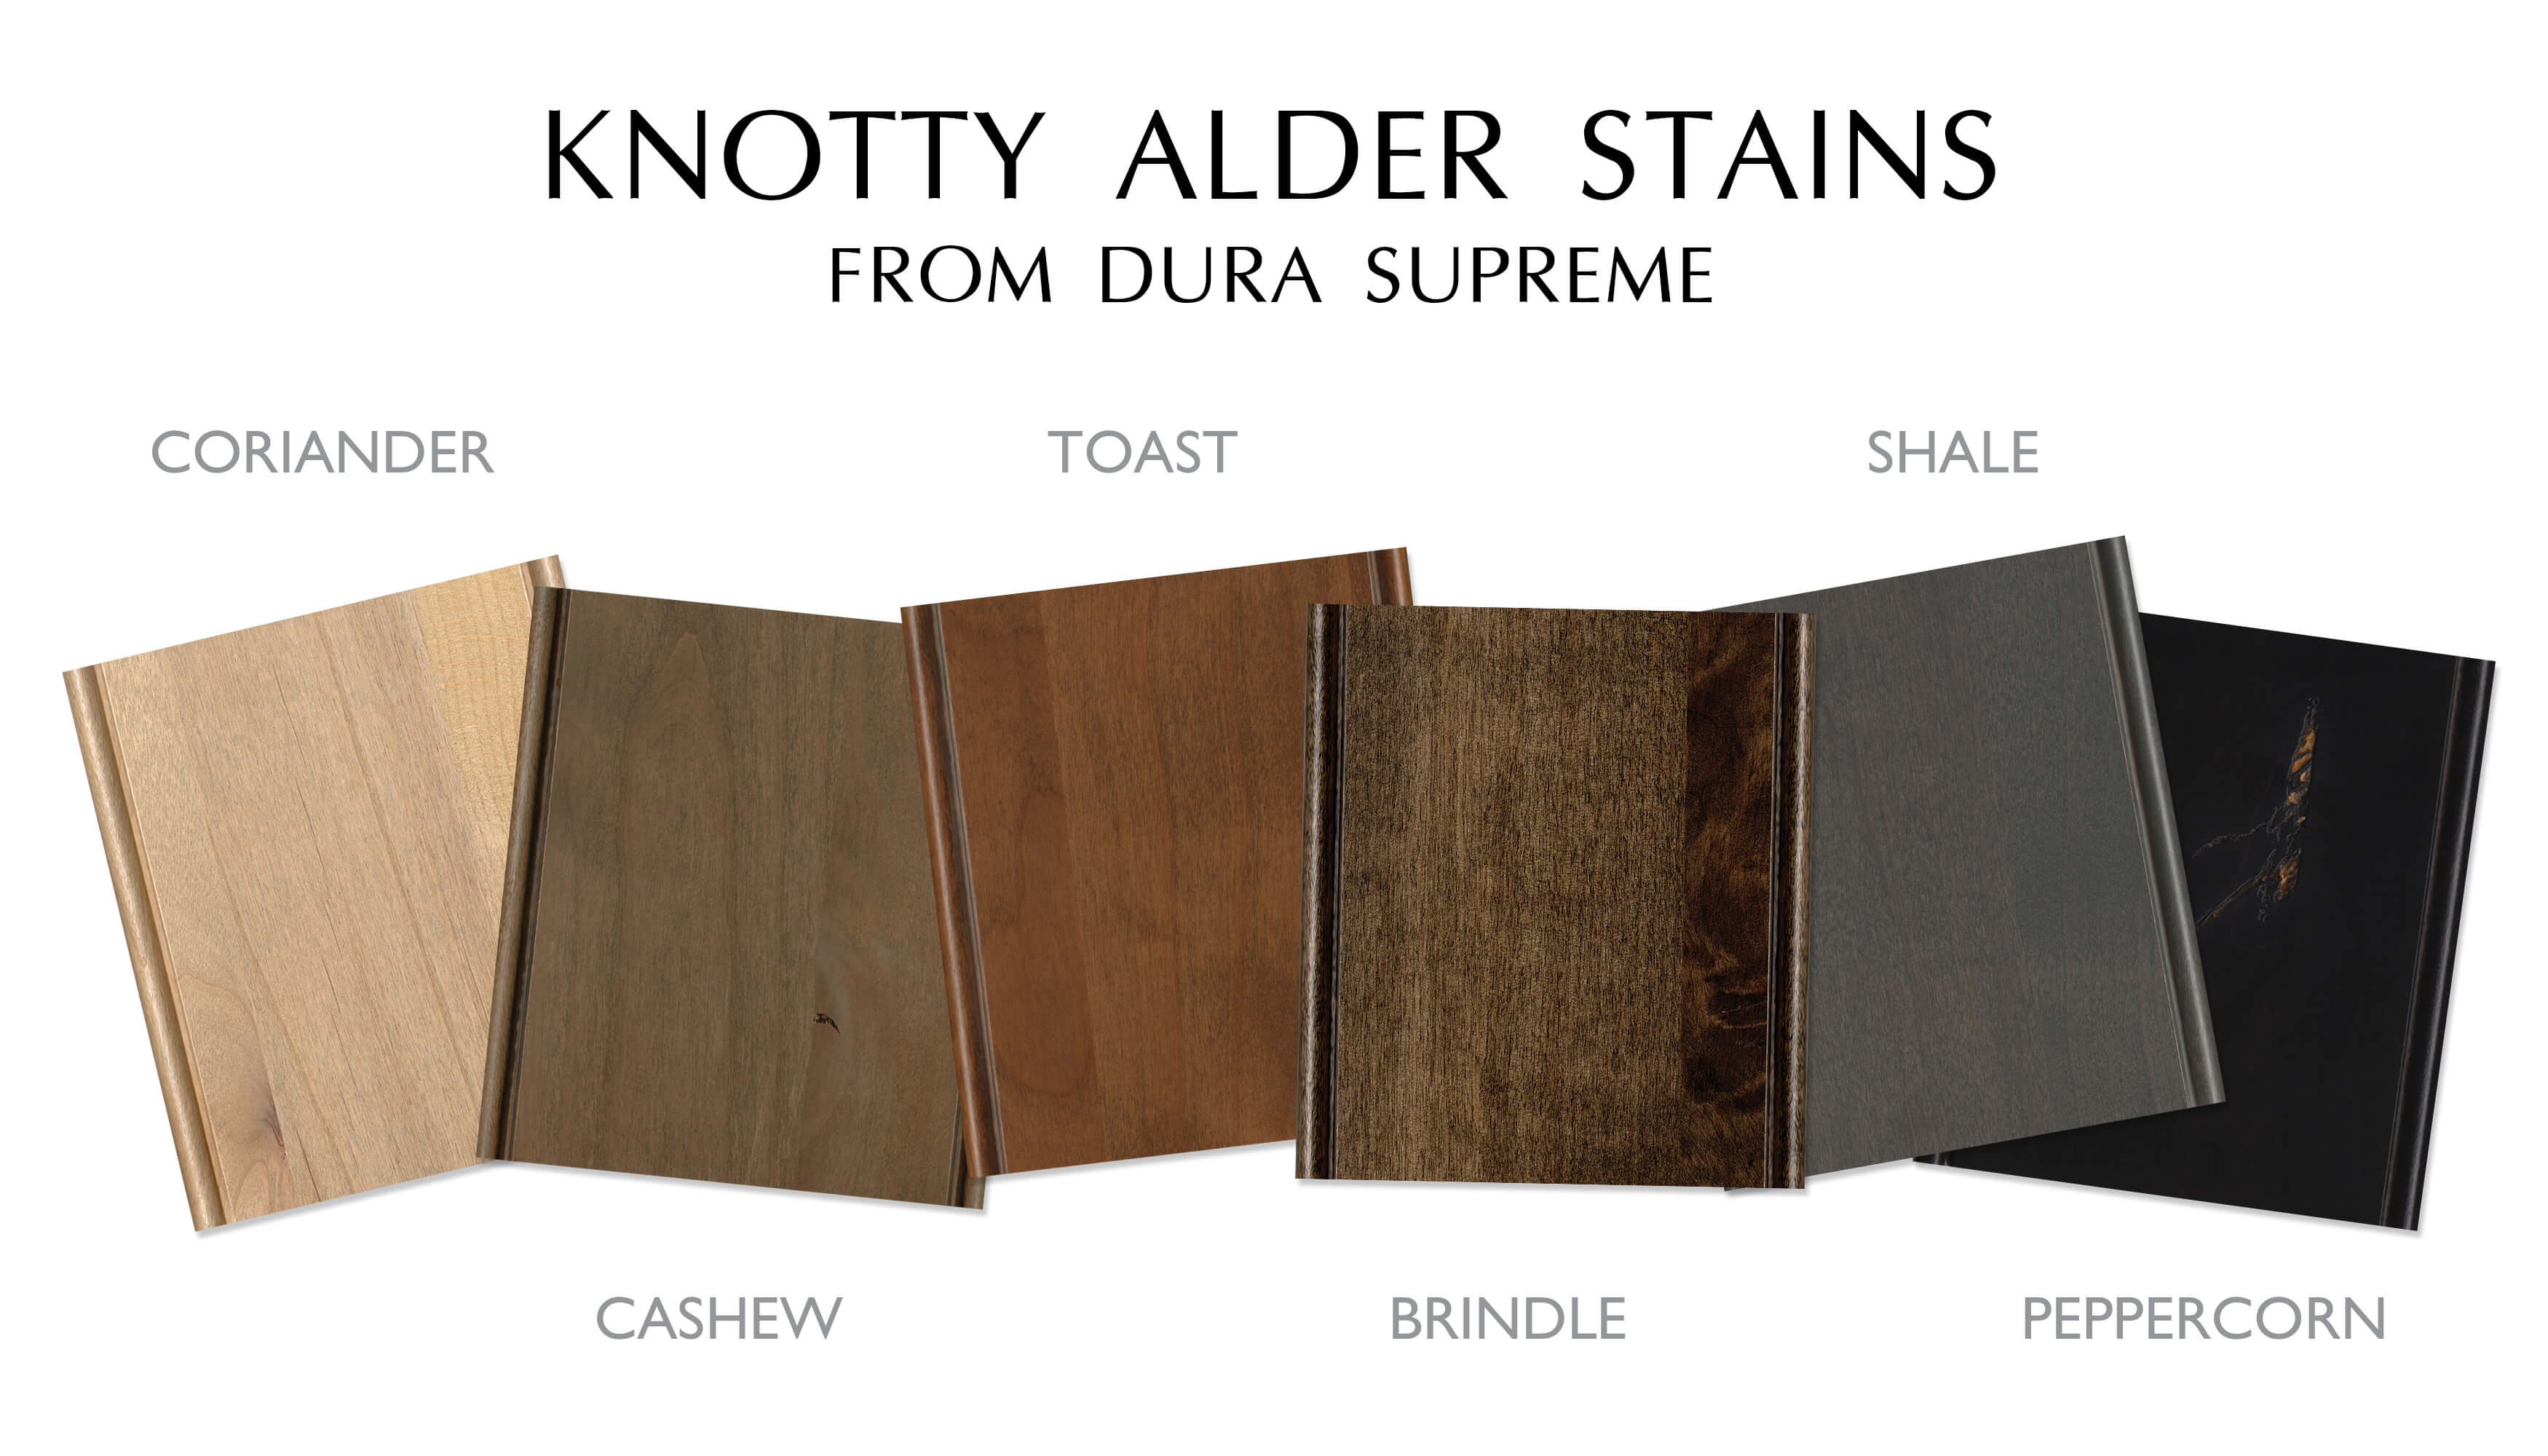 Knotty Alder Staines for kitchen and bath cabinets from Dura Supreme Cabinetry.